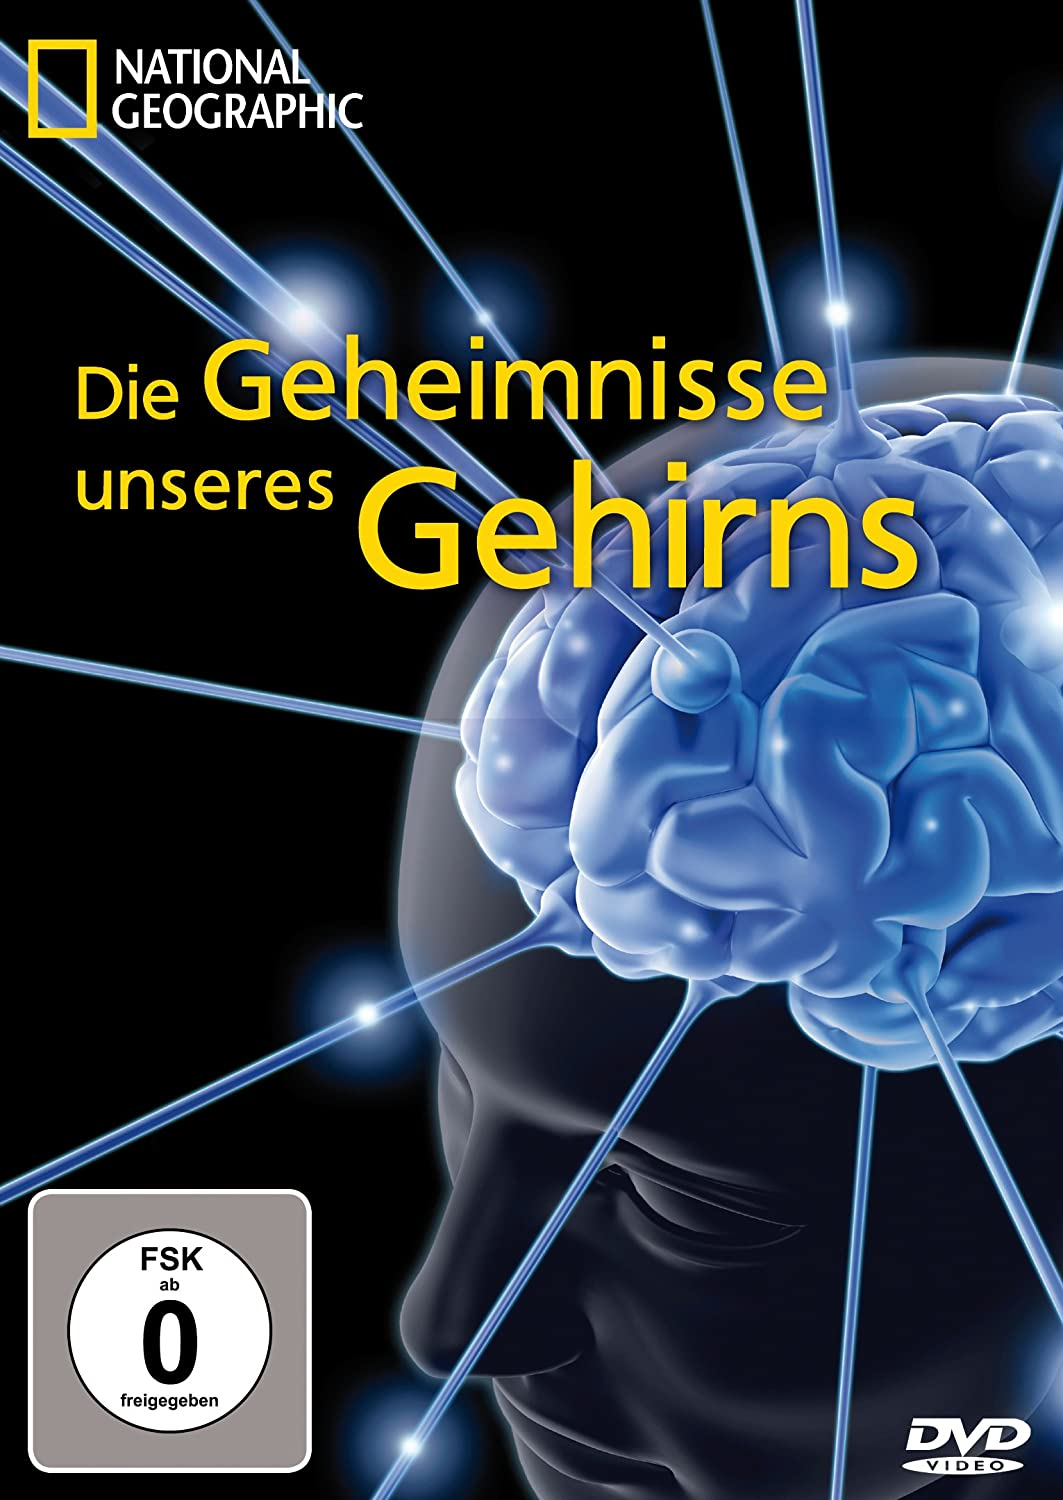 National Geographic - Die Geheimnisse unseres Gehirns: Amazon.de ...